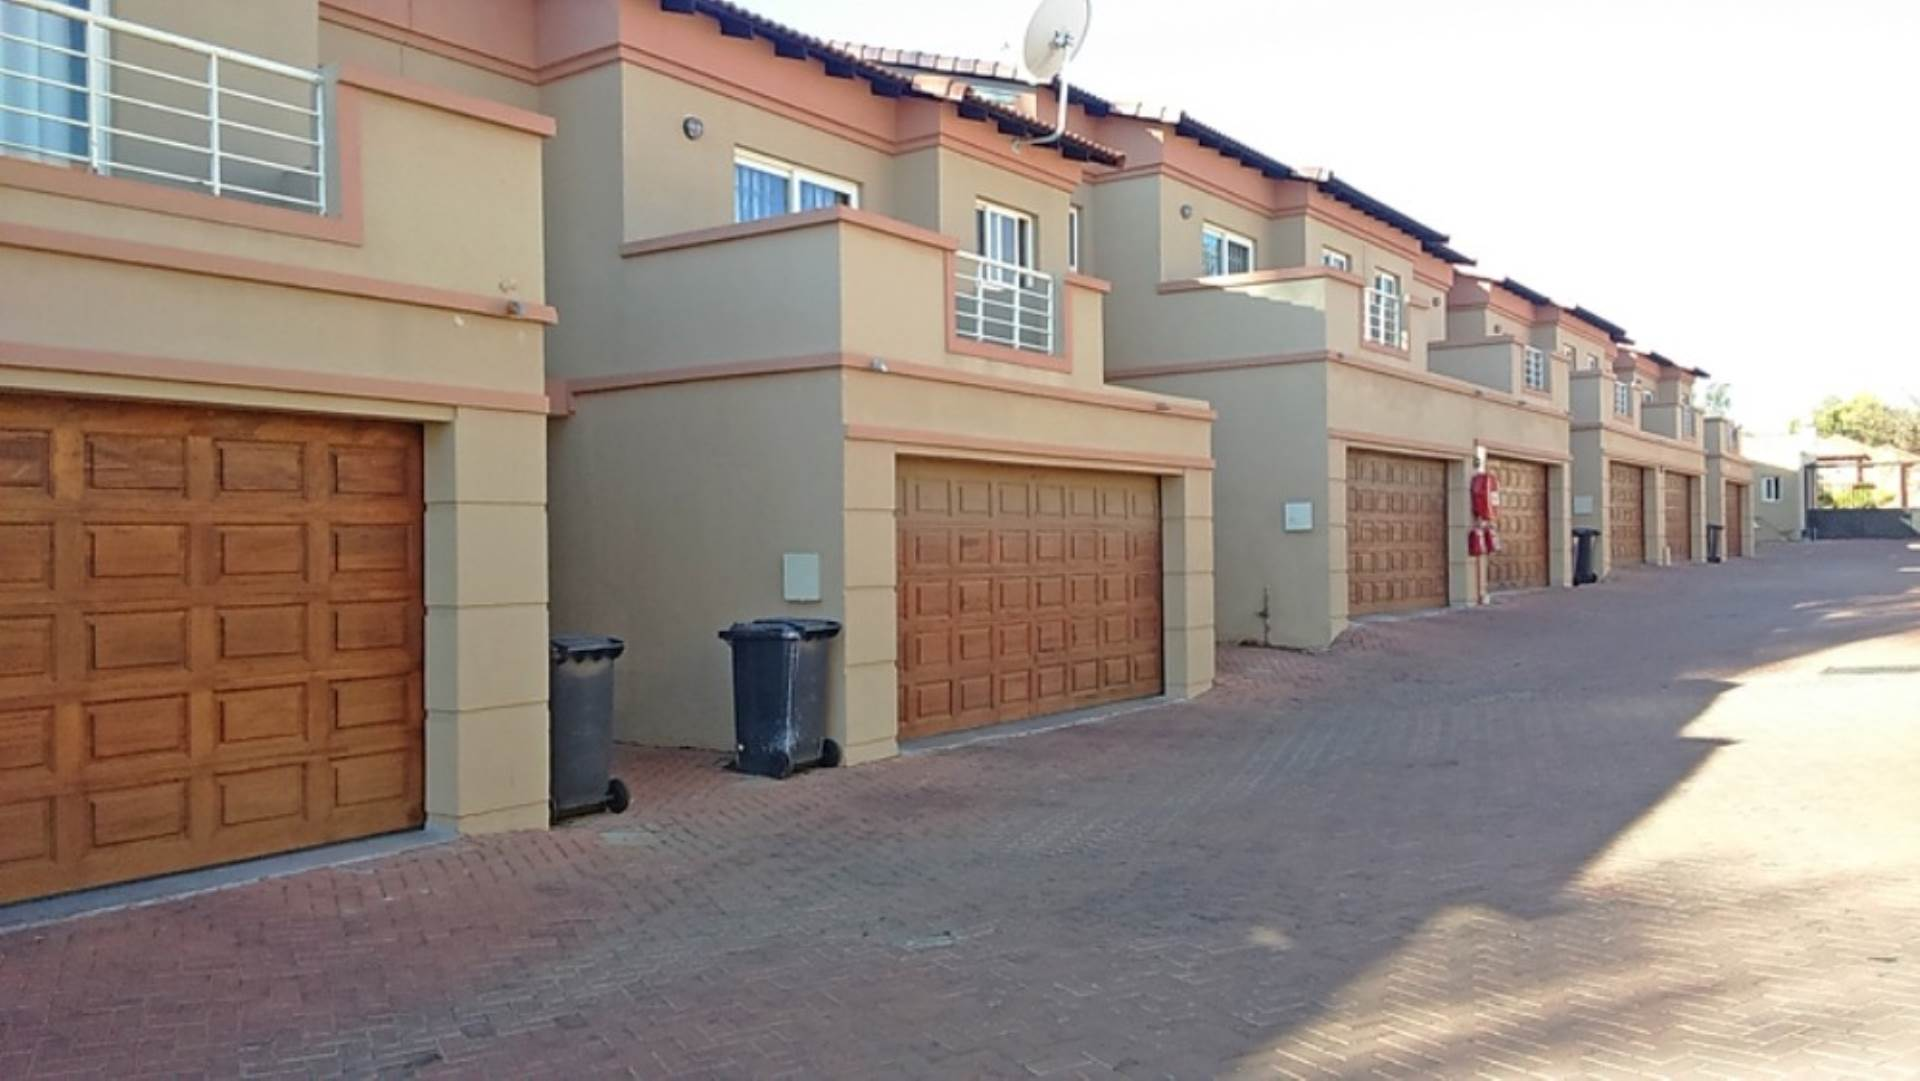 3 BedroomTownhouse To Rent In Ferndale